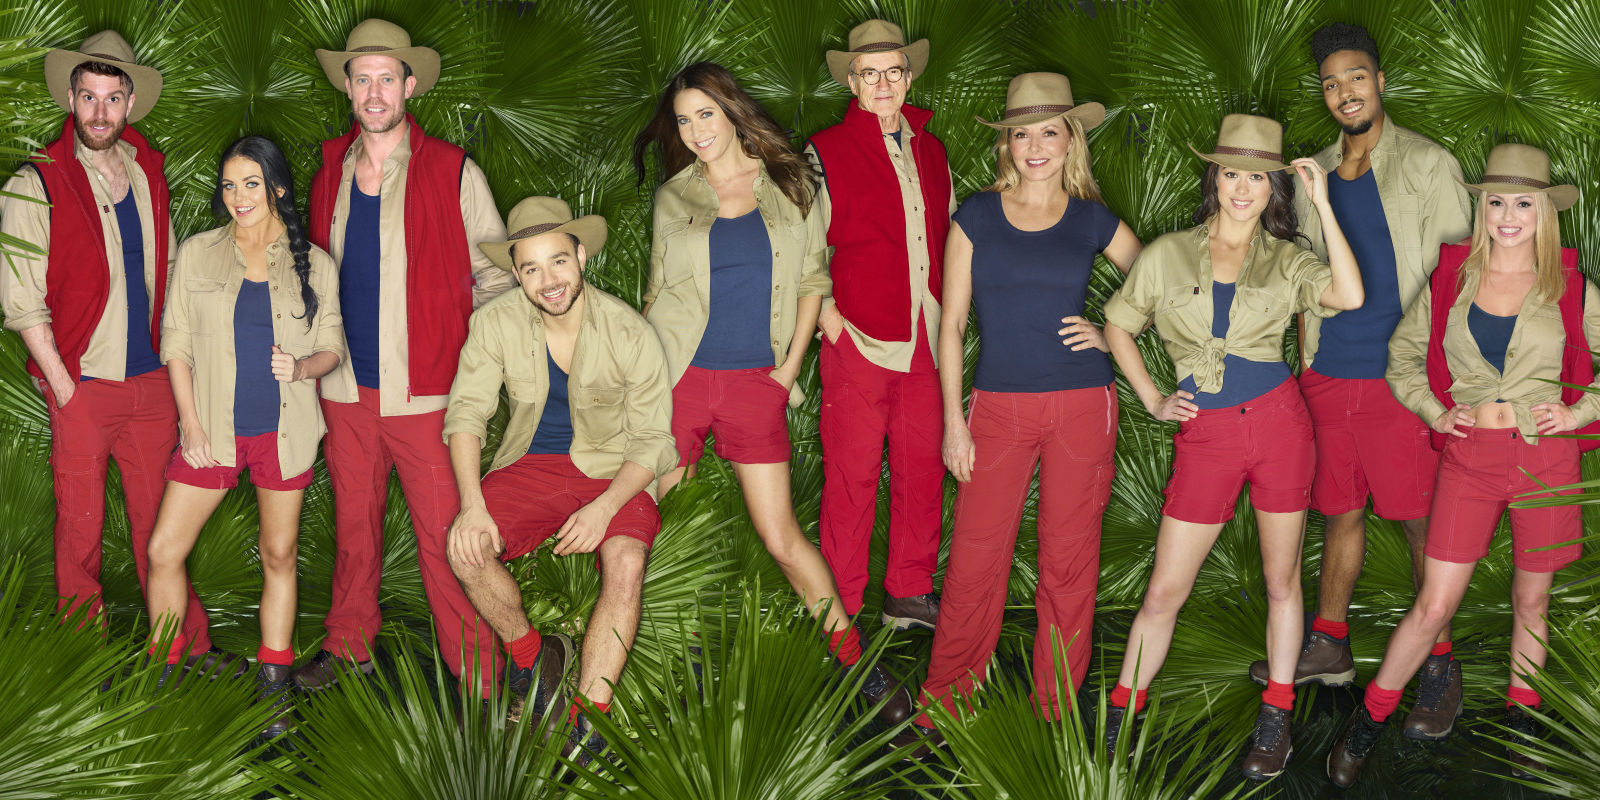 I'm a Celebrity spin-off Extra Camp confirms ... - Digital Spy